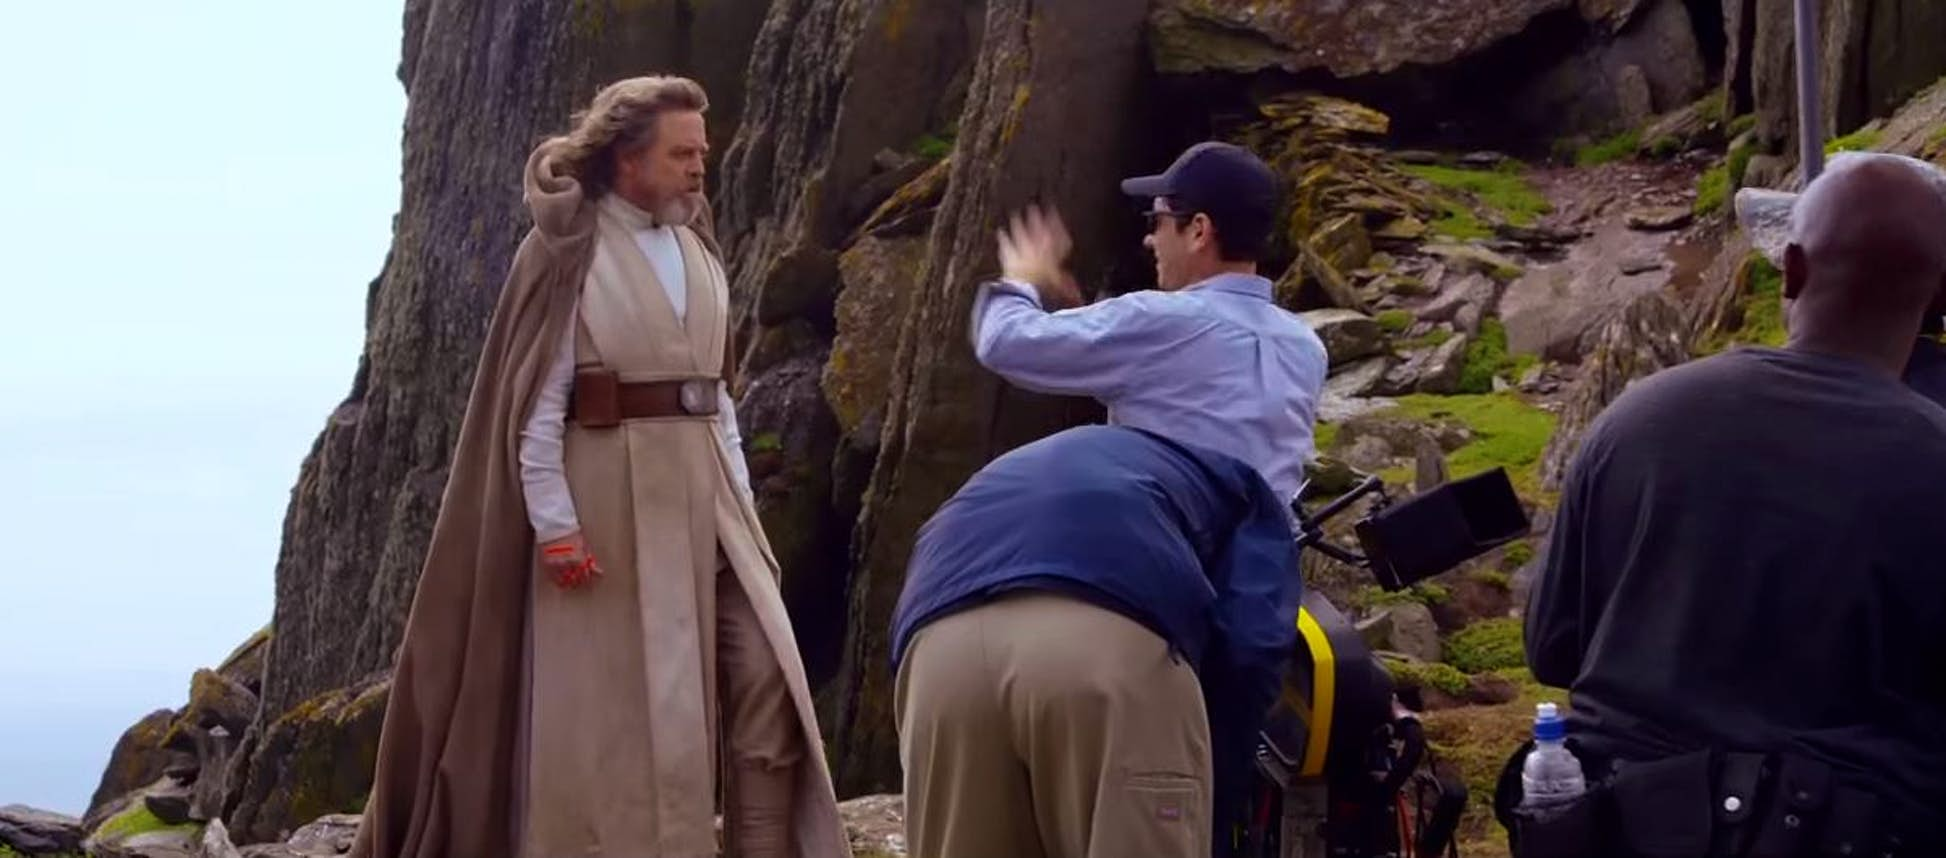 Luke Skywalker, played by Mark Hamill, pictured on Skellig island during filming © Tourism Ireland